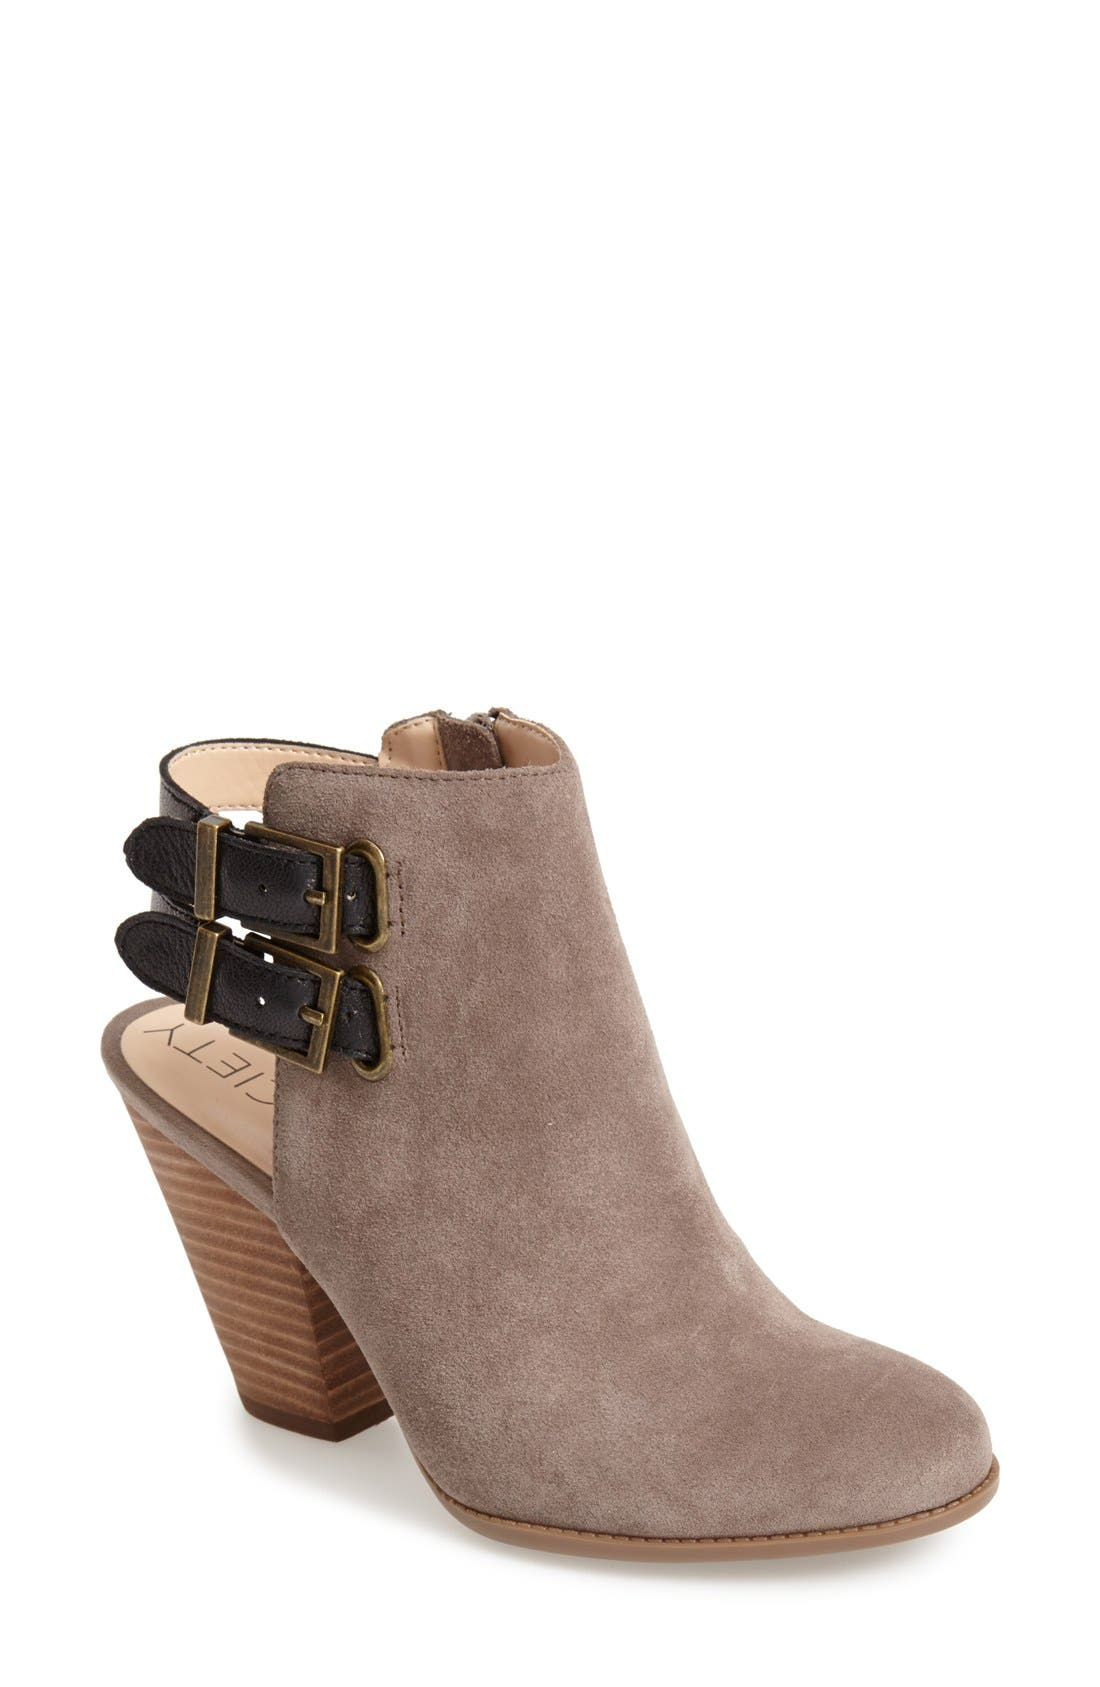 Alternate Image 1 Selected - Sole Society 'Austin' Suede Bootie (Women)